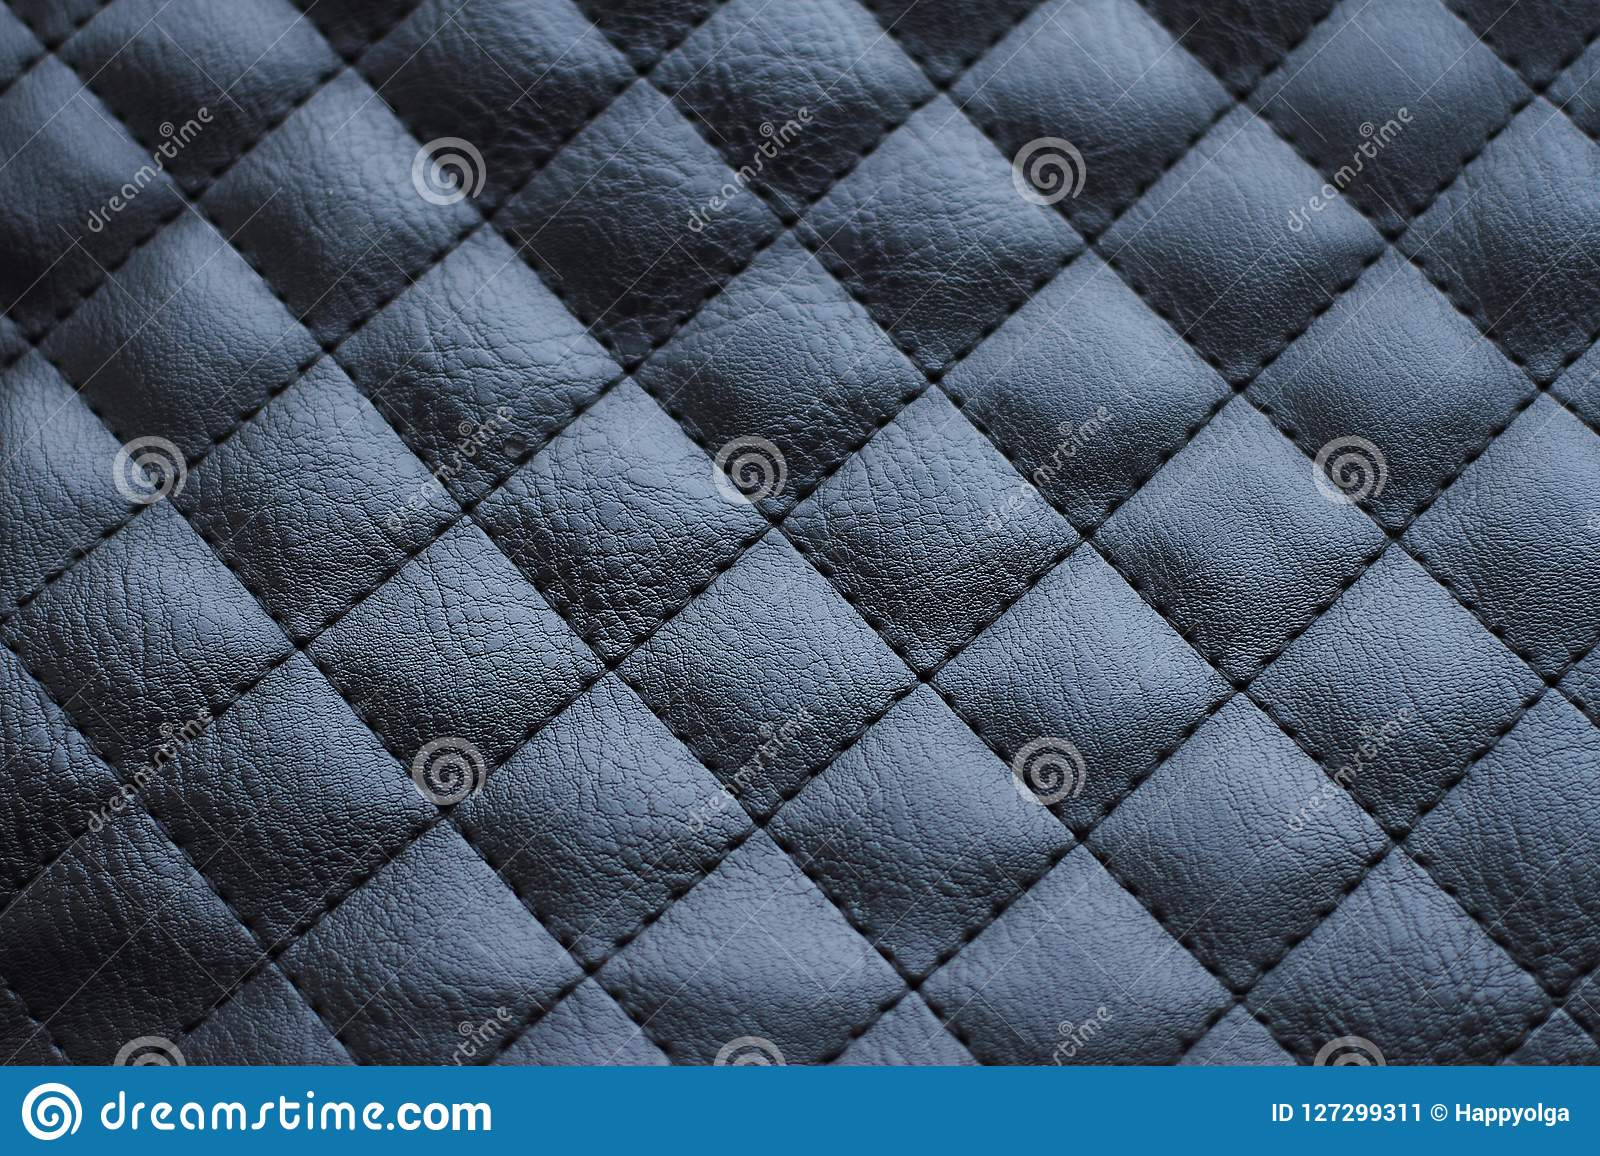 Black Leather Upholstery Stock Image Image Of Quilted 127299311